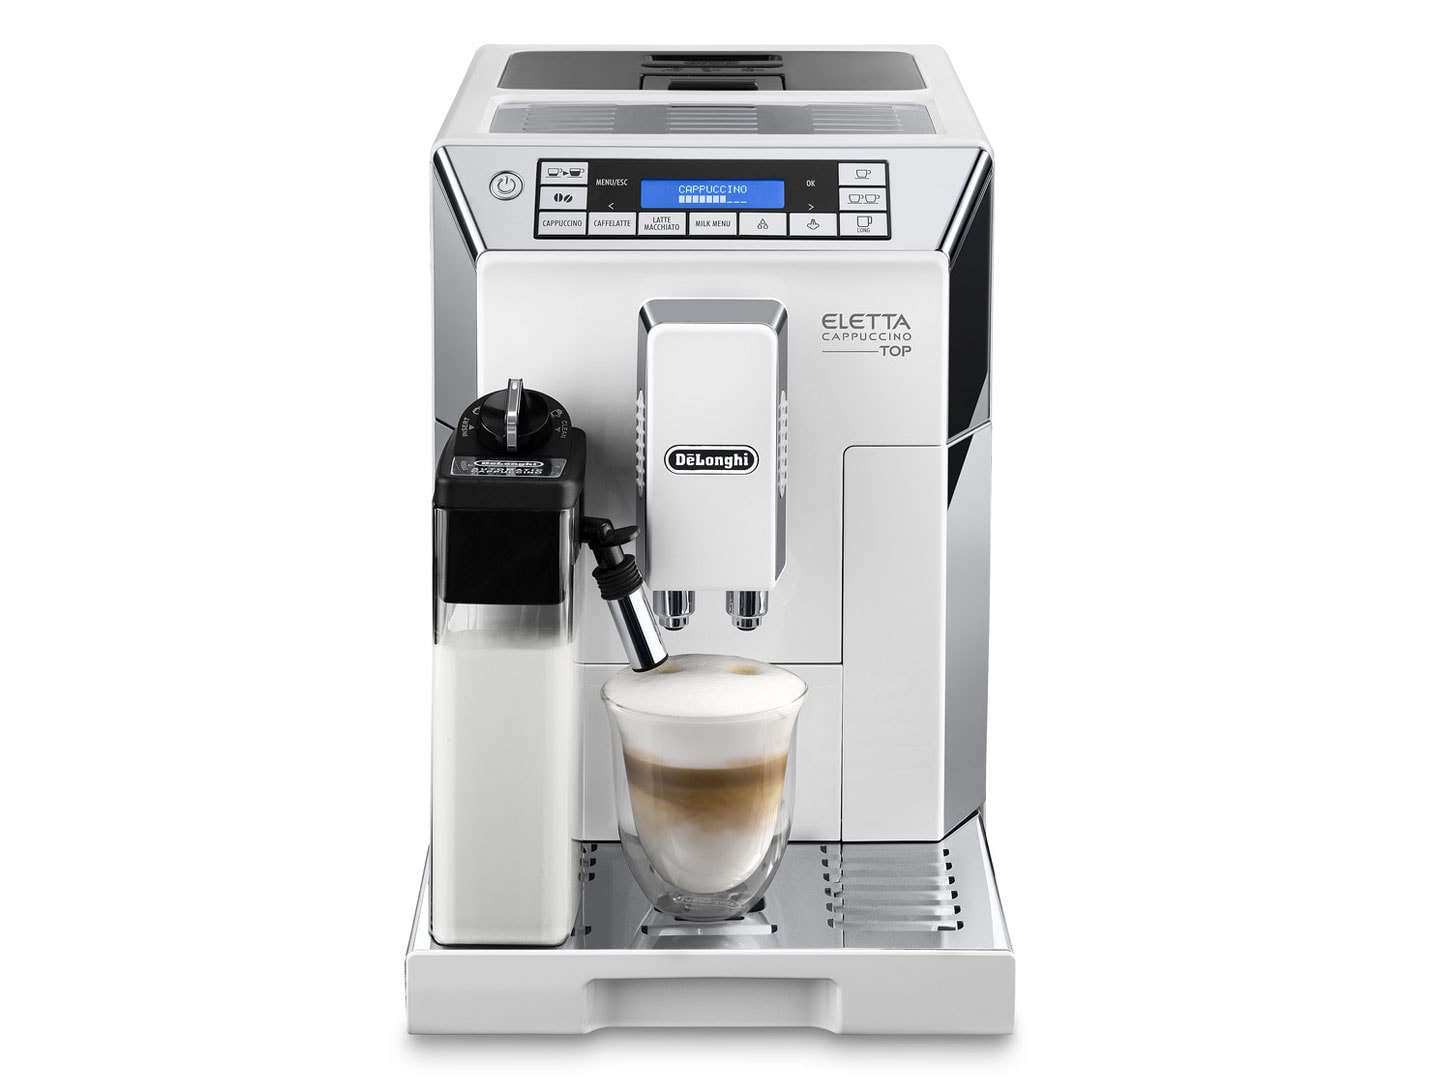 Eletta Cappuccino ECAM45760W fully automatic coffee machine